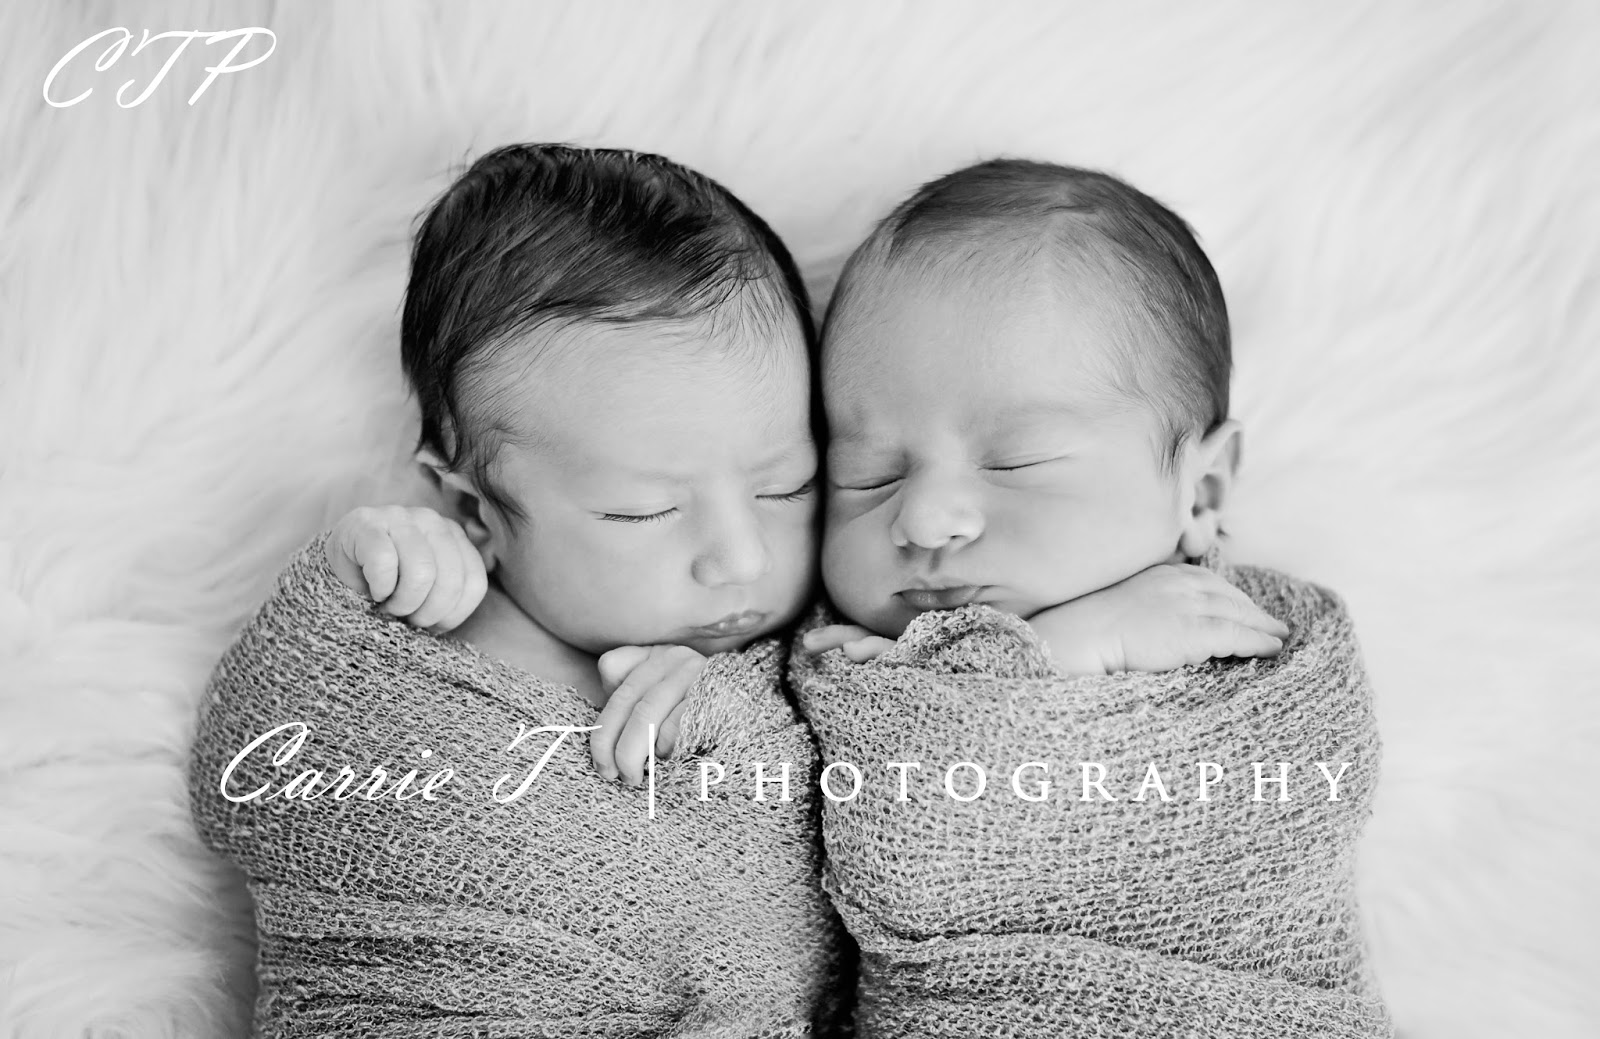 Such handsomely beautiful twin boys today these two made it all the way to the end of the race in mamas belly weighing in each larger than my singleton